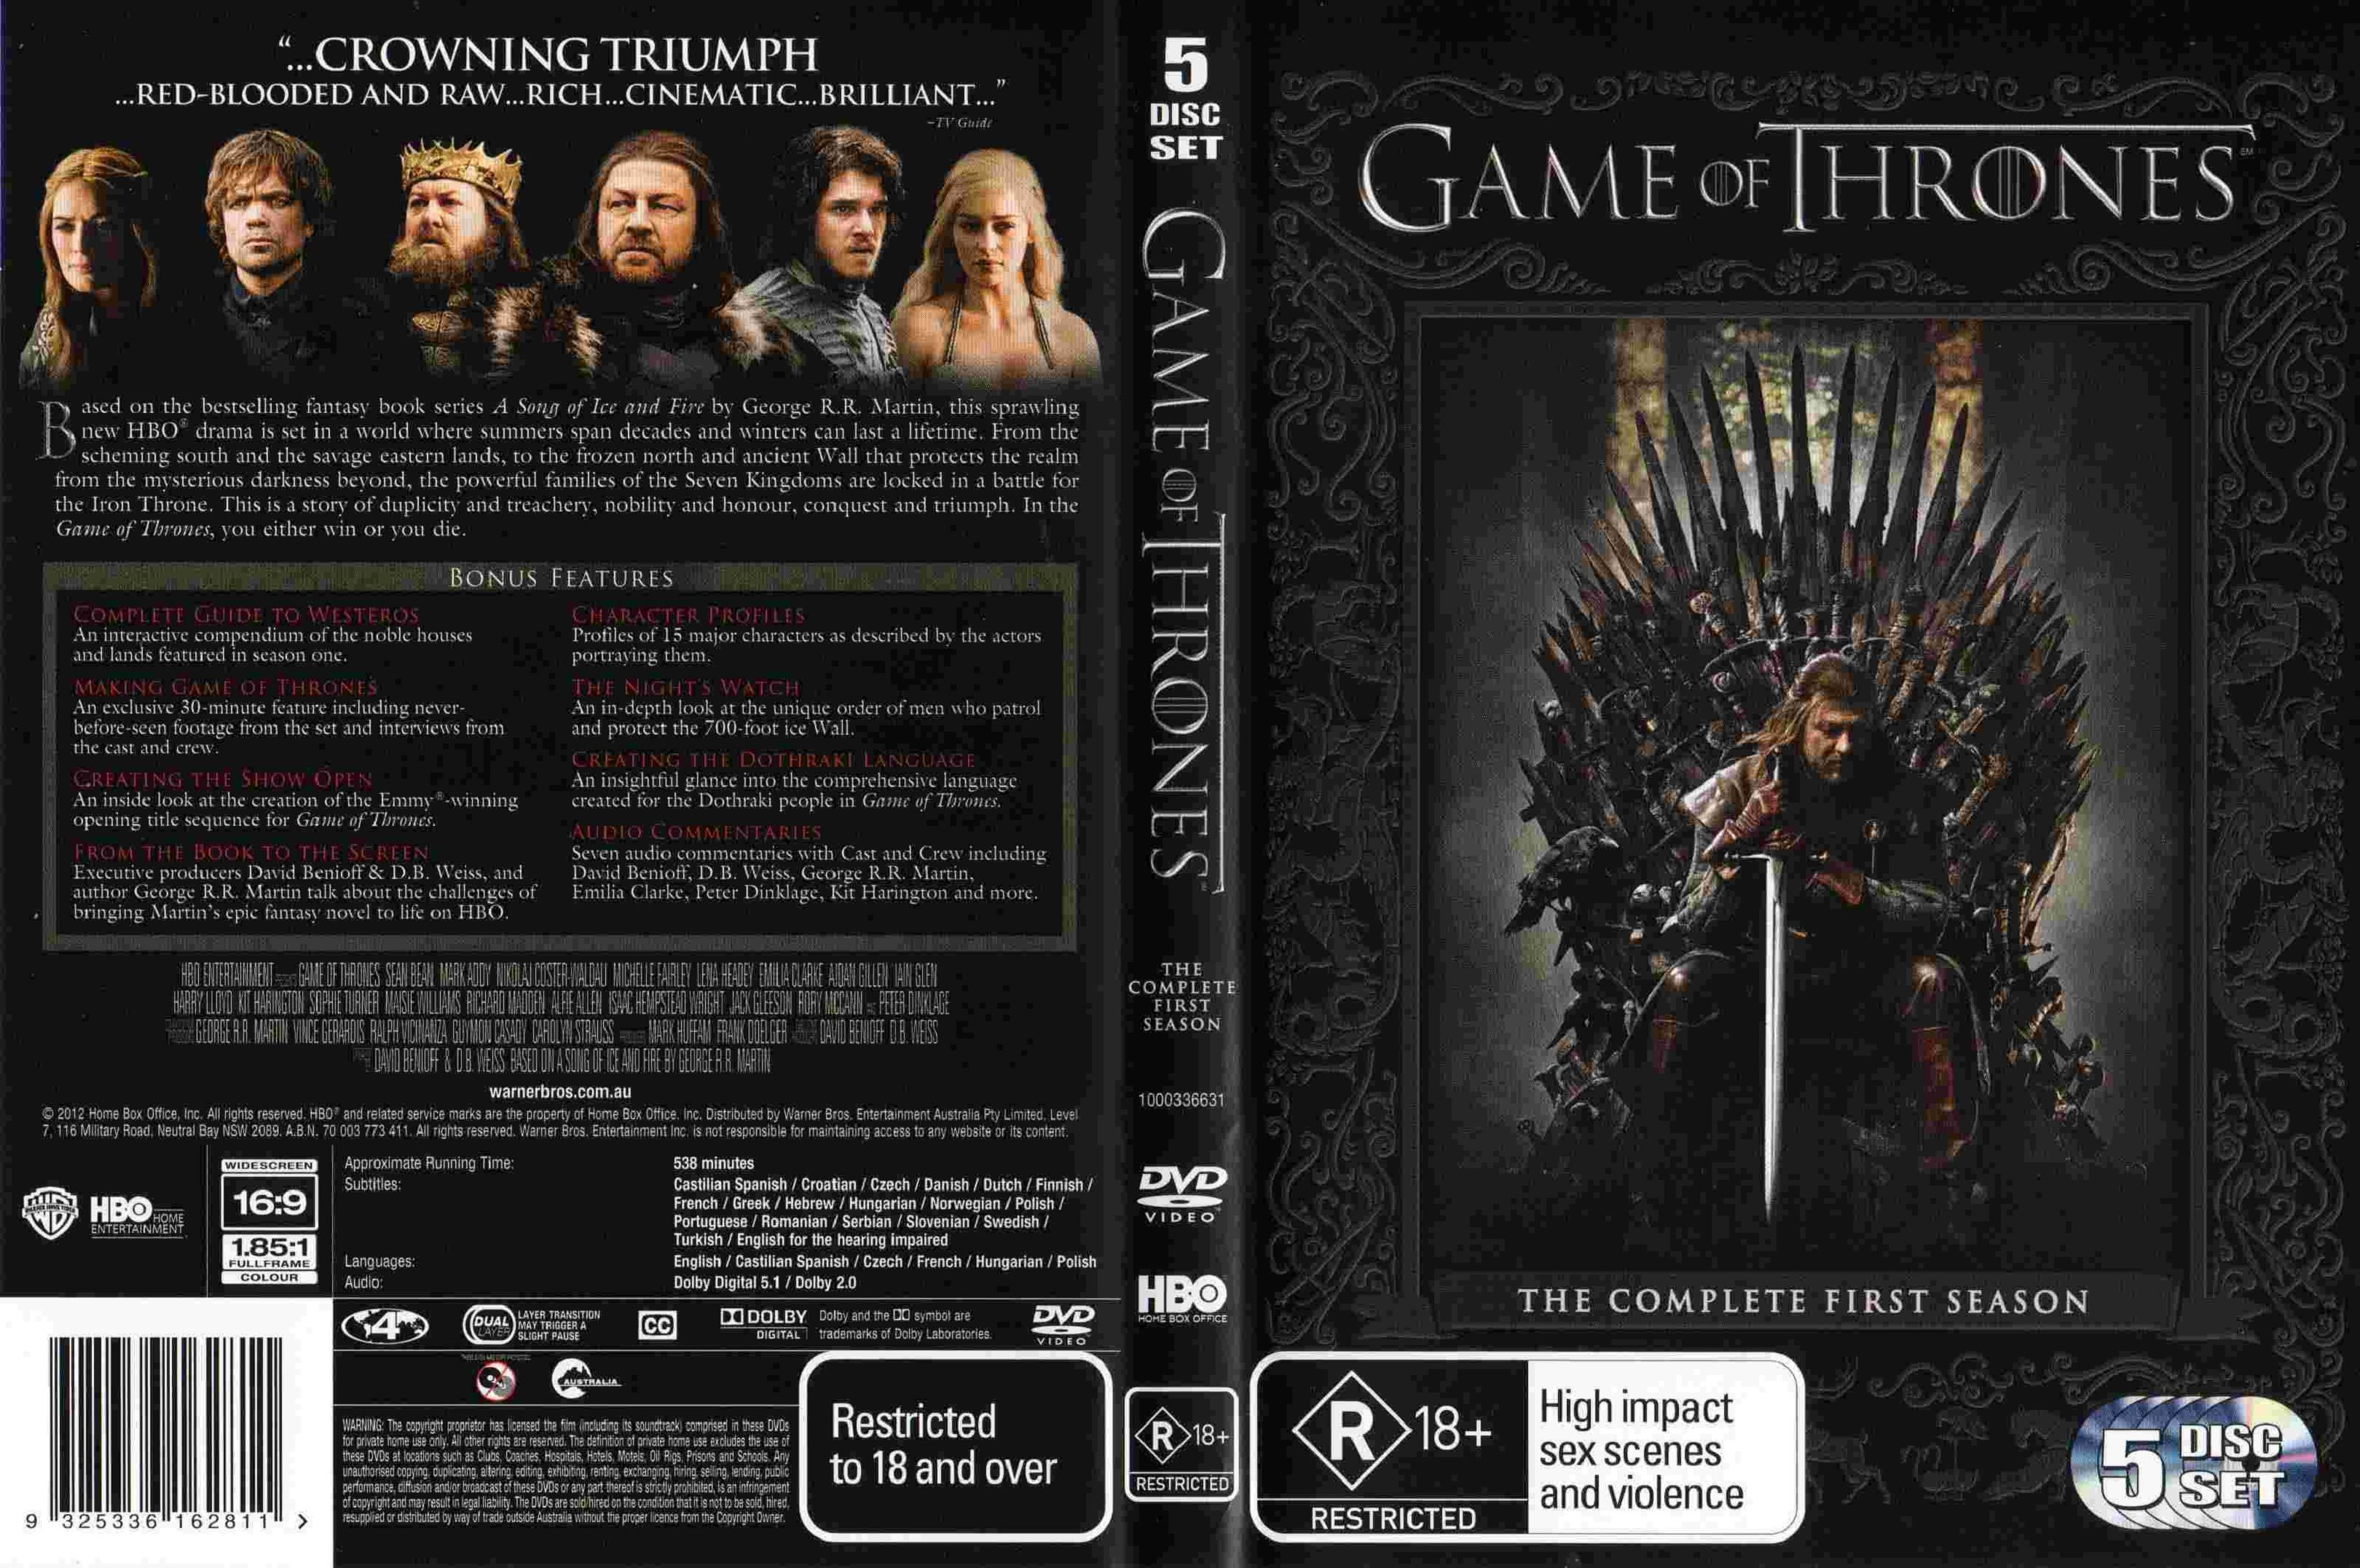 Game Of Thrones Season 1 2012 R4 Dvd Cover Dvd Covers